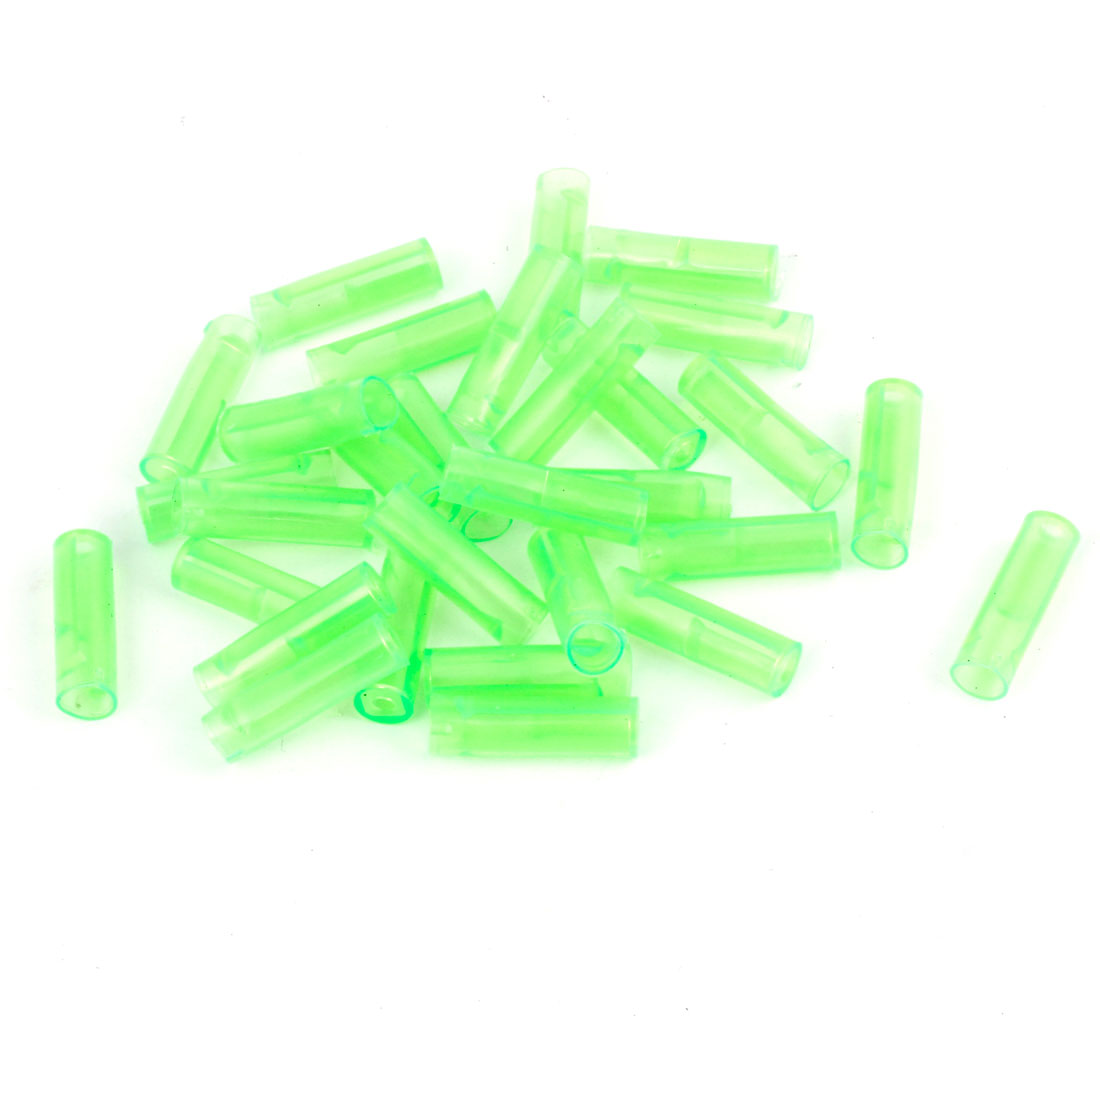 30 Pcs Motorcycle Green PVC Crimp Terminal Cover Sleeves 23mm x 6mm